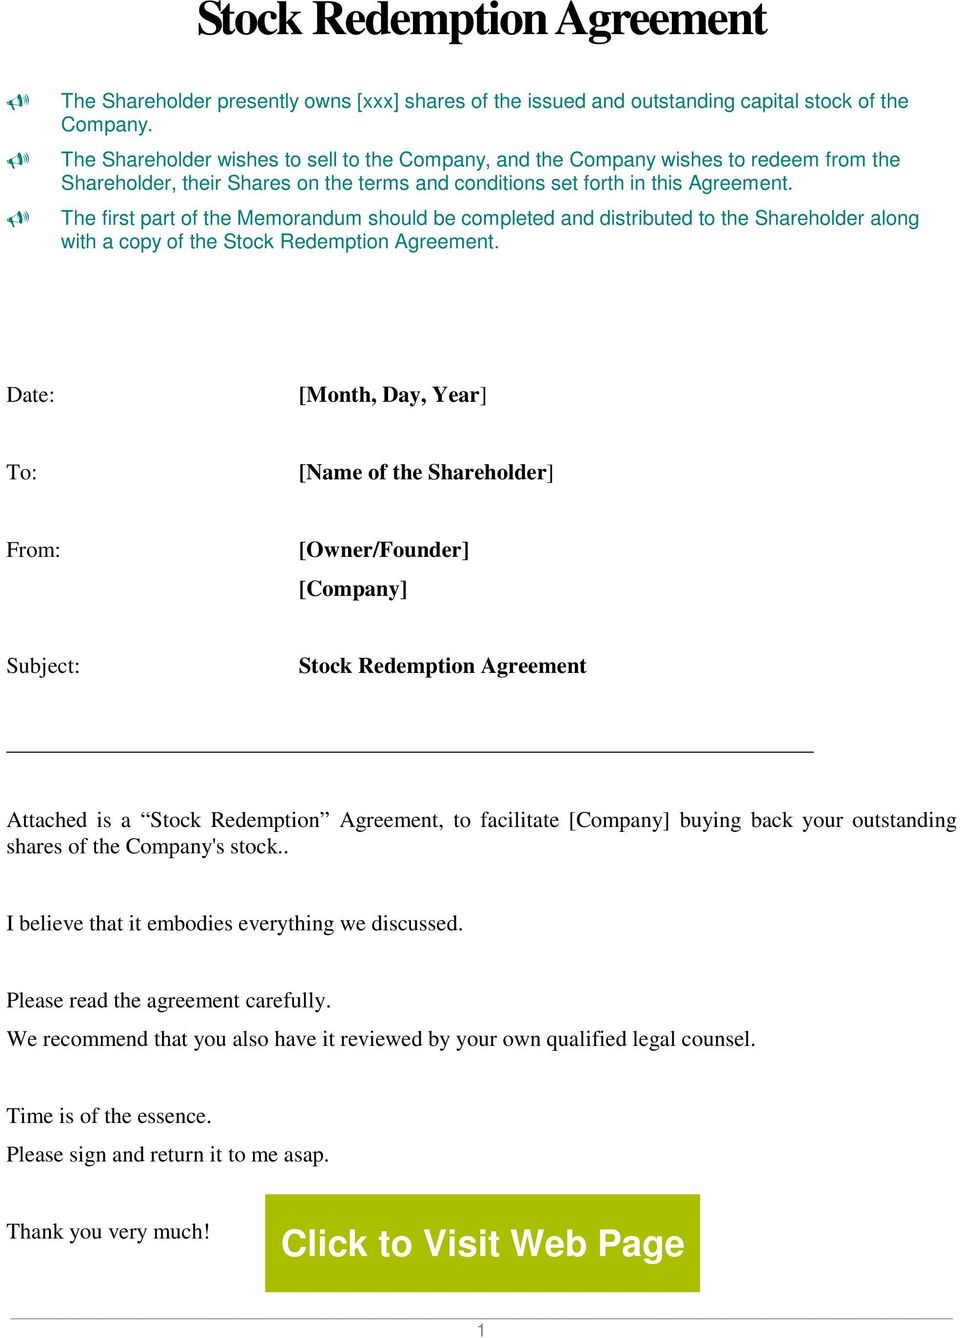 Stock Redemption Agreement Pdf Free Download